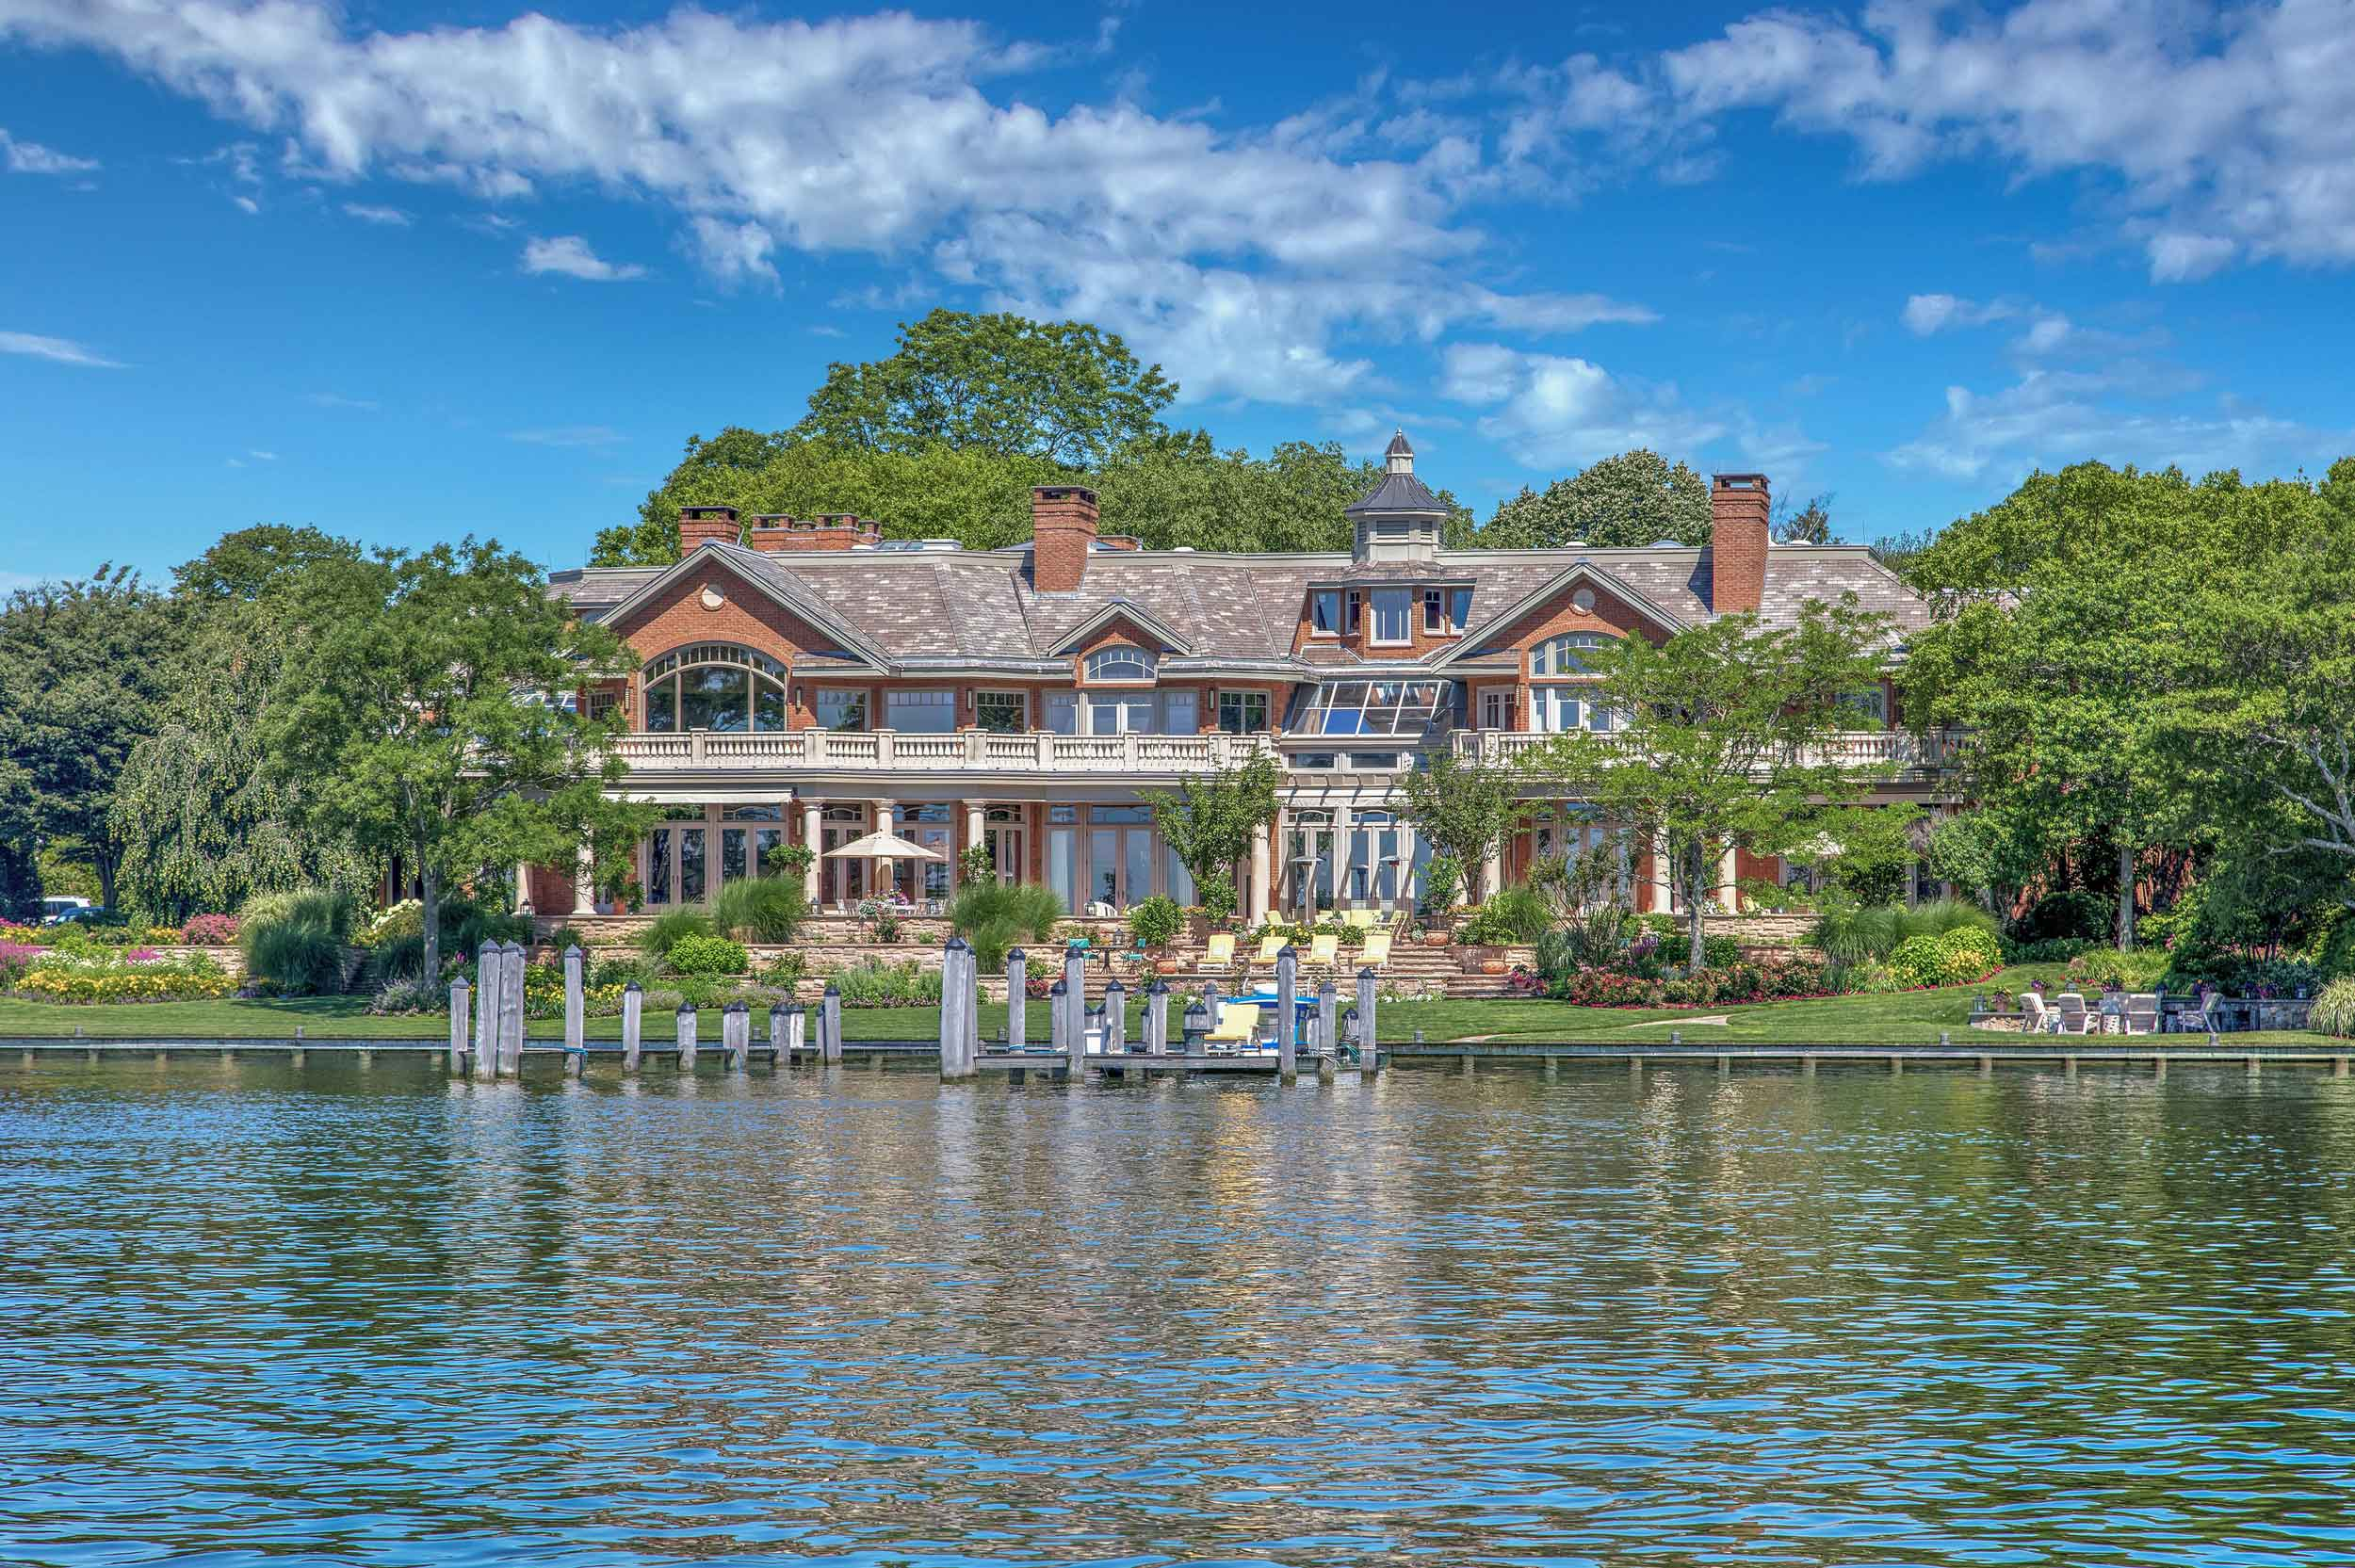 The aptly named Sui Generis is a one-of-a-kind waterfront retreat on New Jersey's Manasquan River.